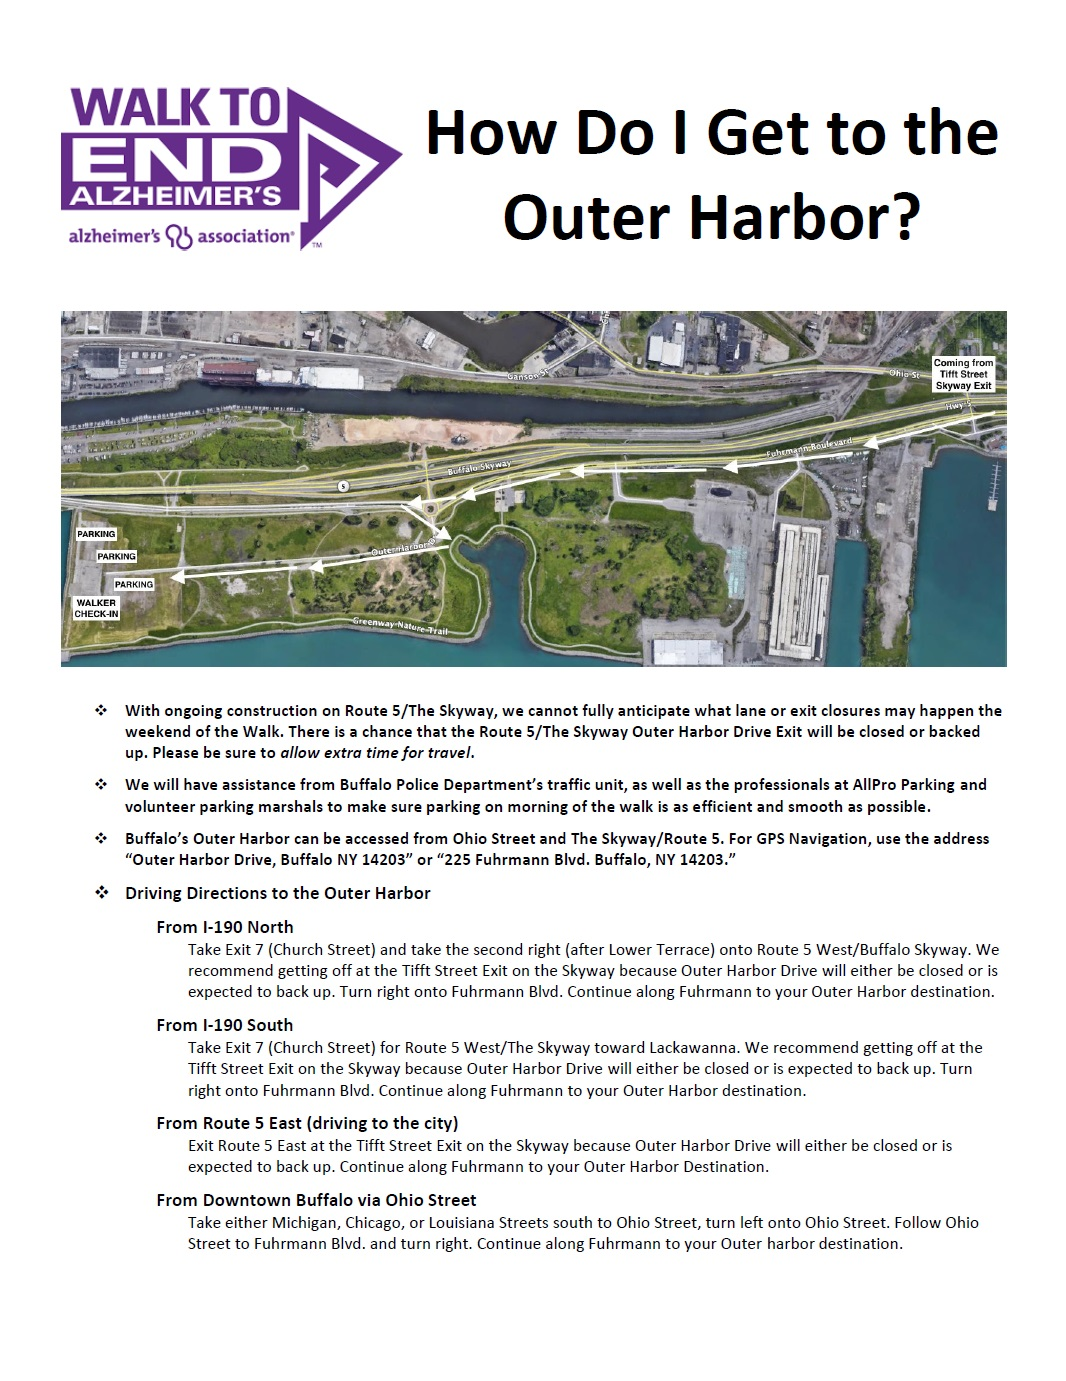 Parking Directions to the Outer Harbor